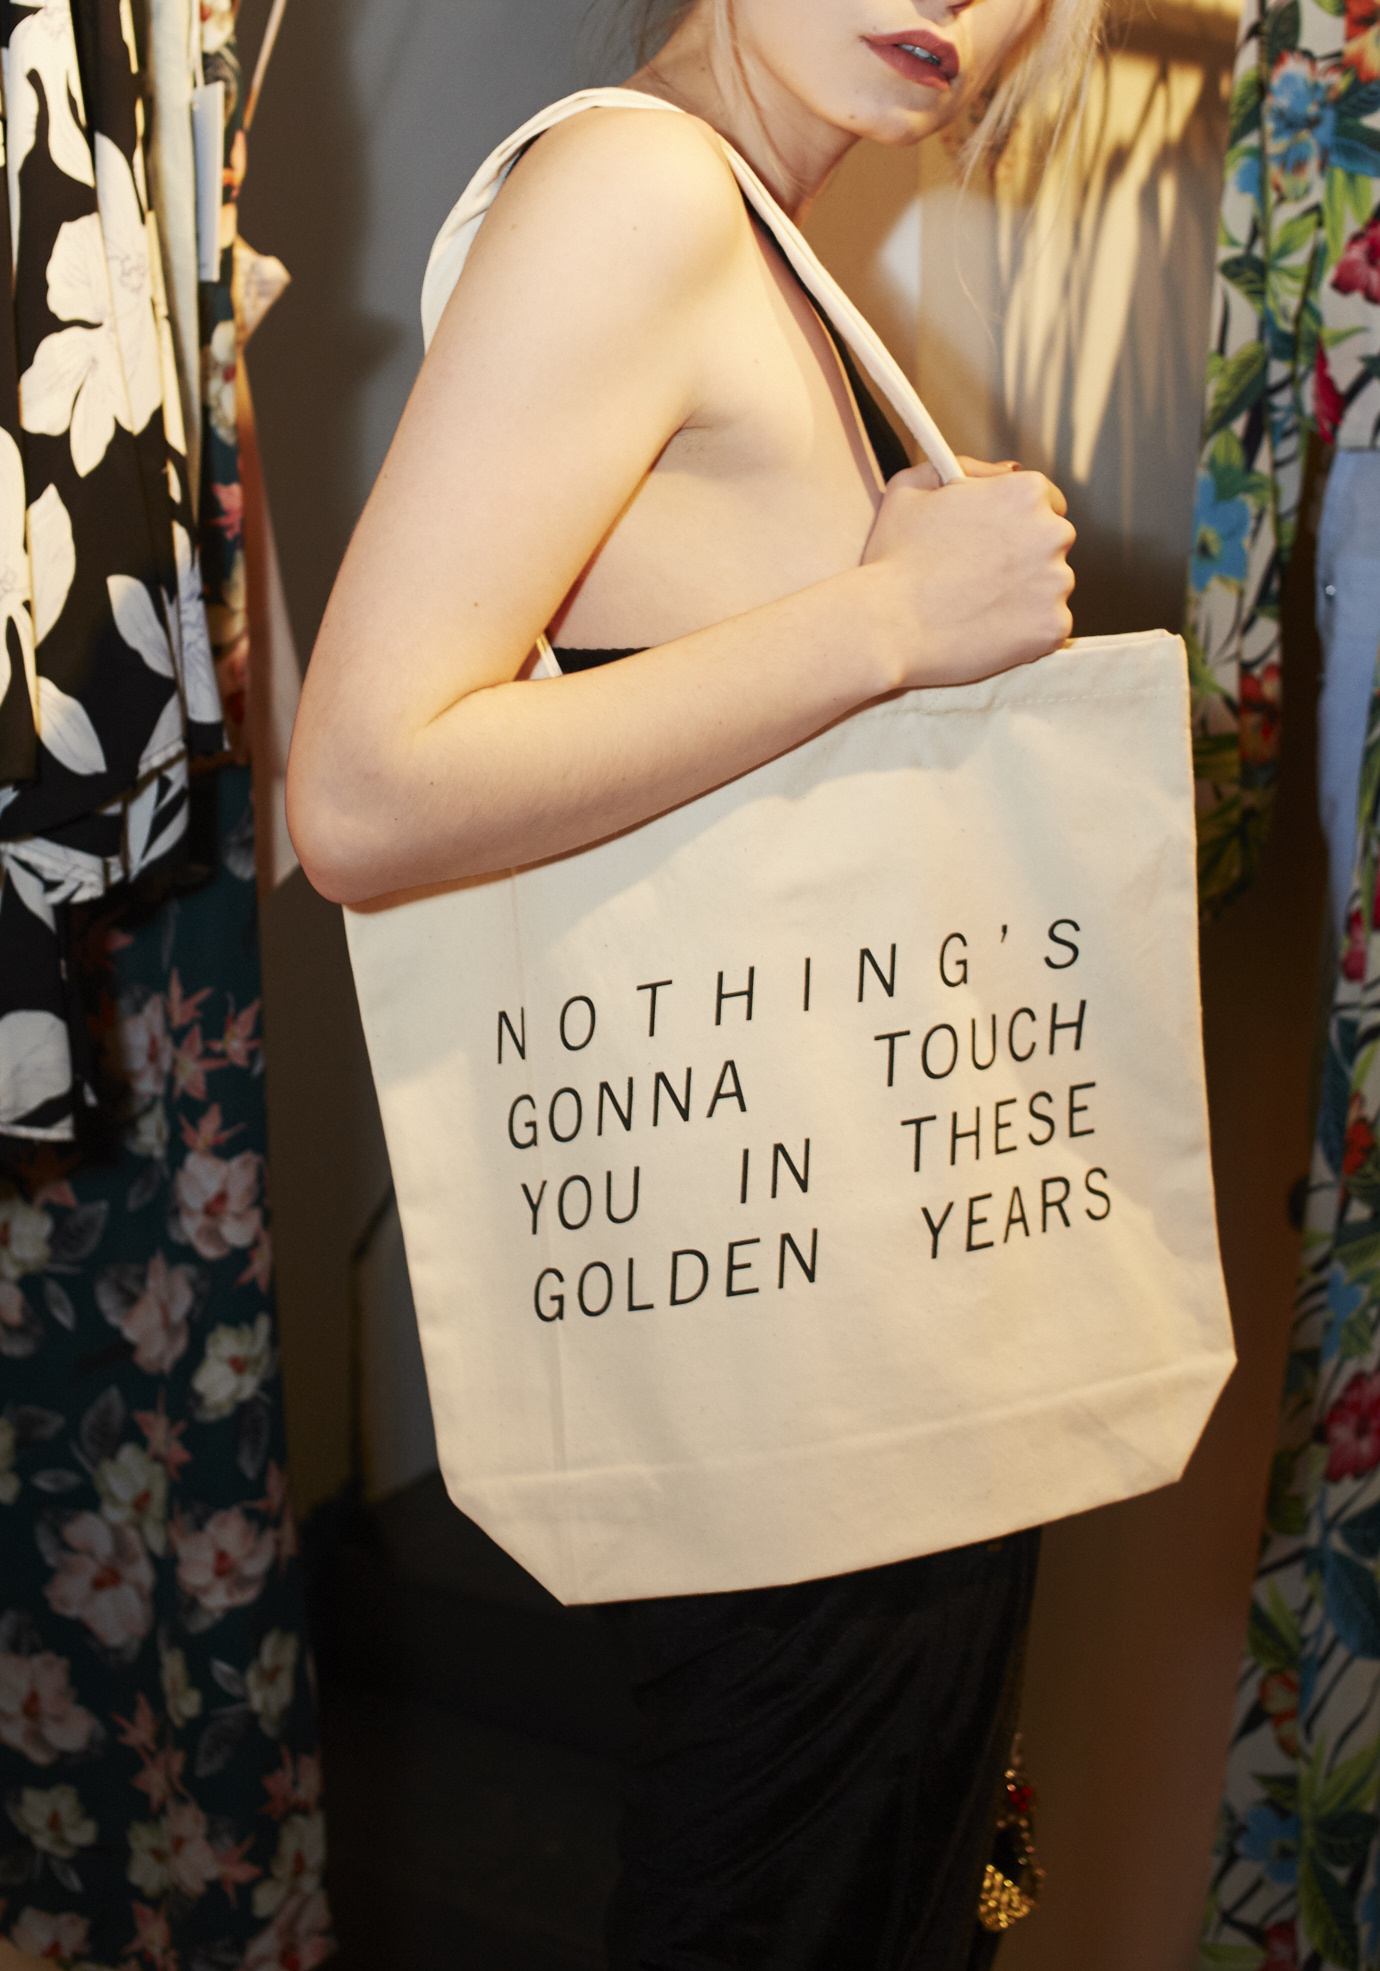 Golden Years Tote  by Fieldguided $25.00 CAN